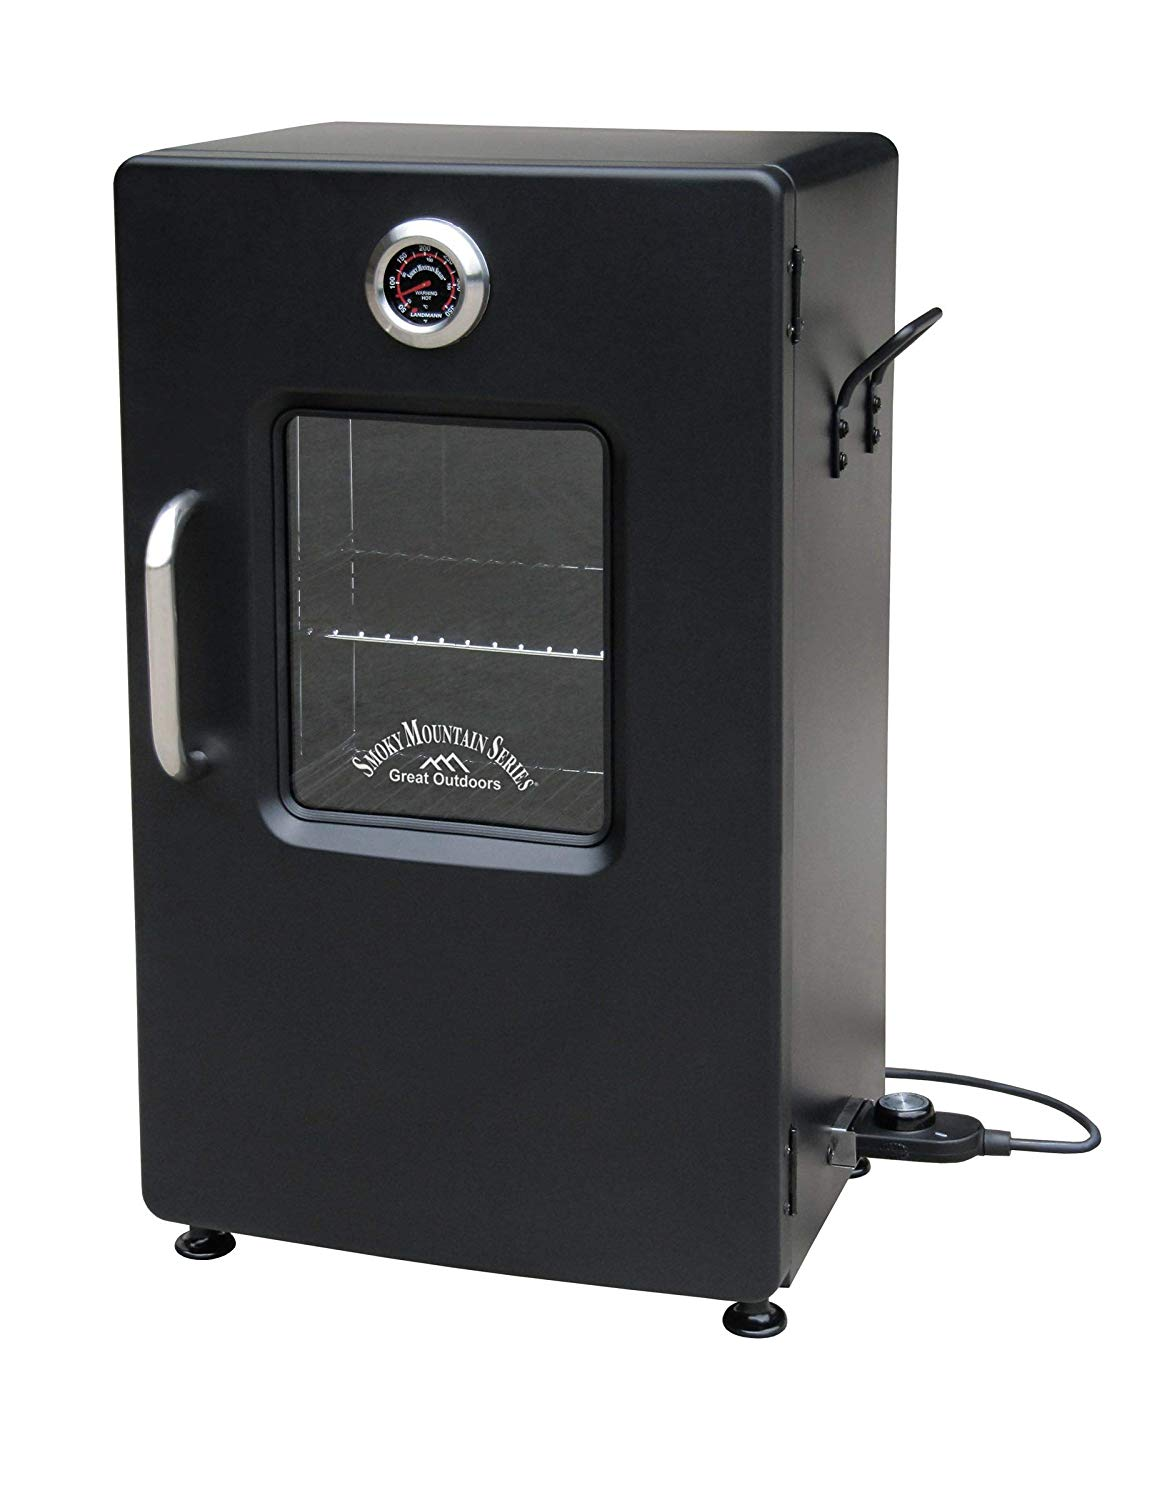 Landmann MCO 32954 electric smoker